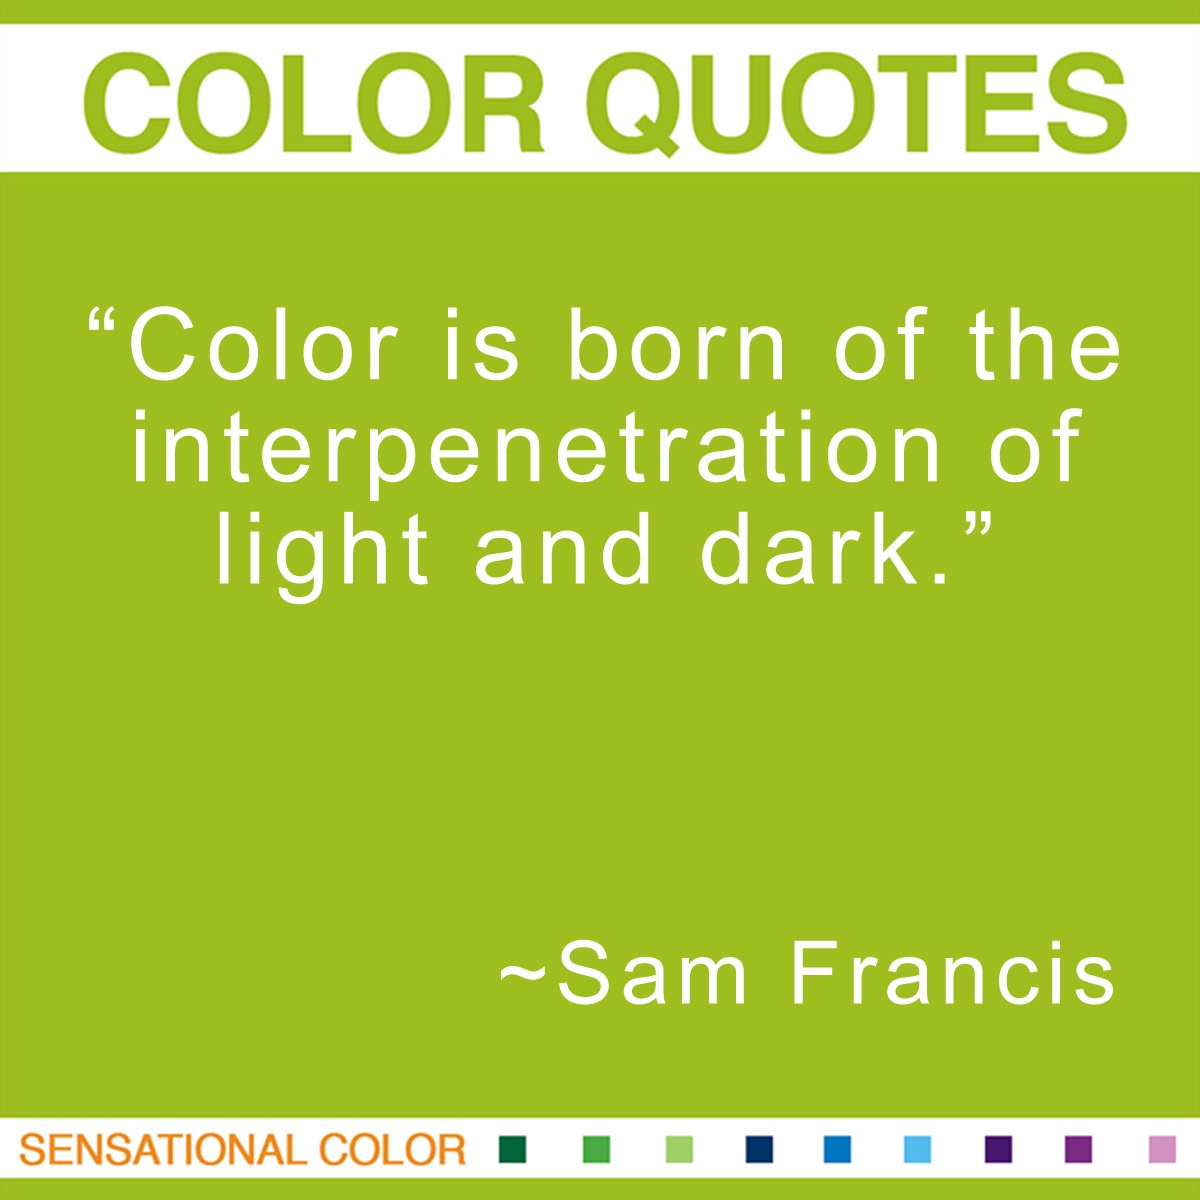 """Color is born of the interpenetration of light and dark."" - Sam Francis"